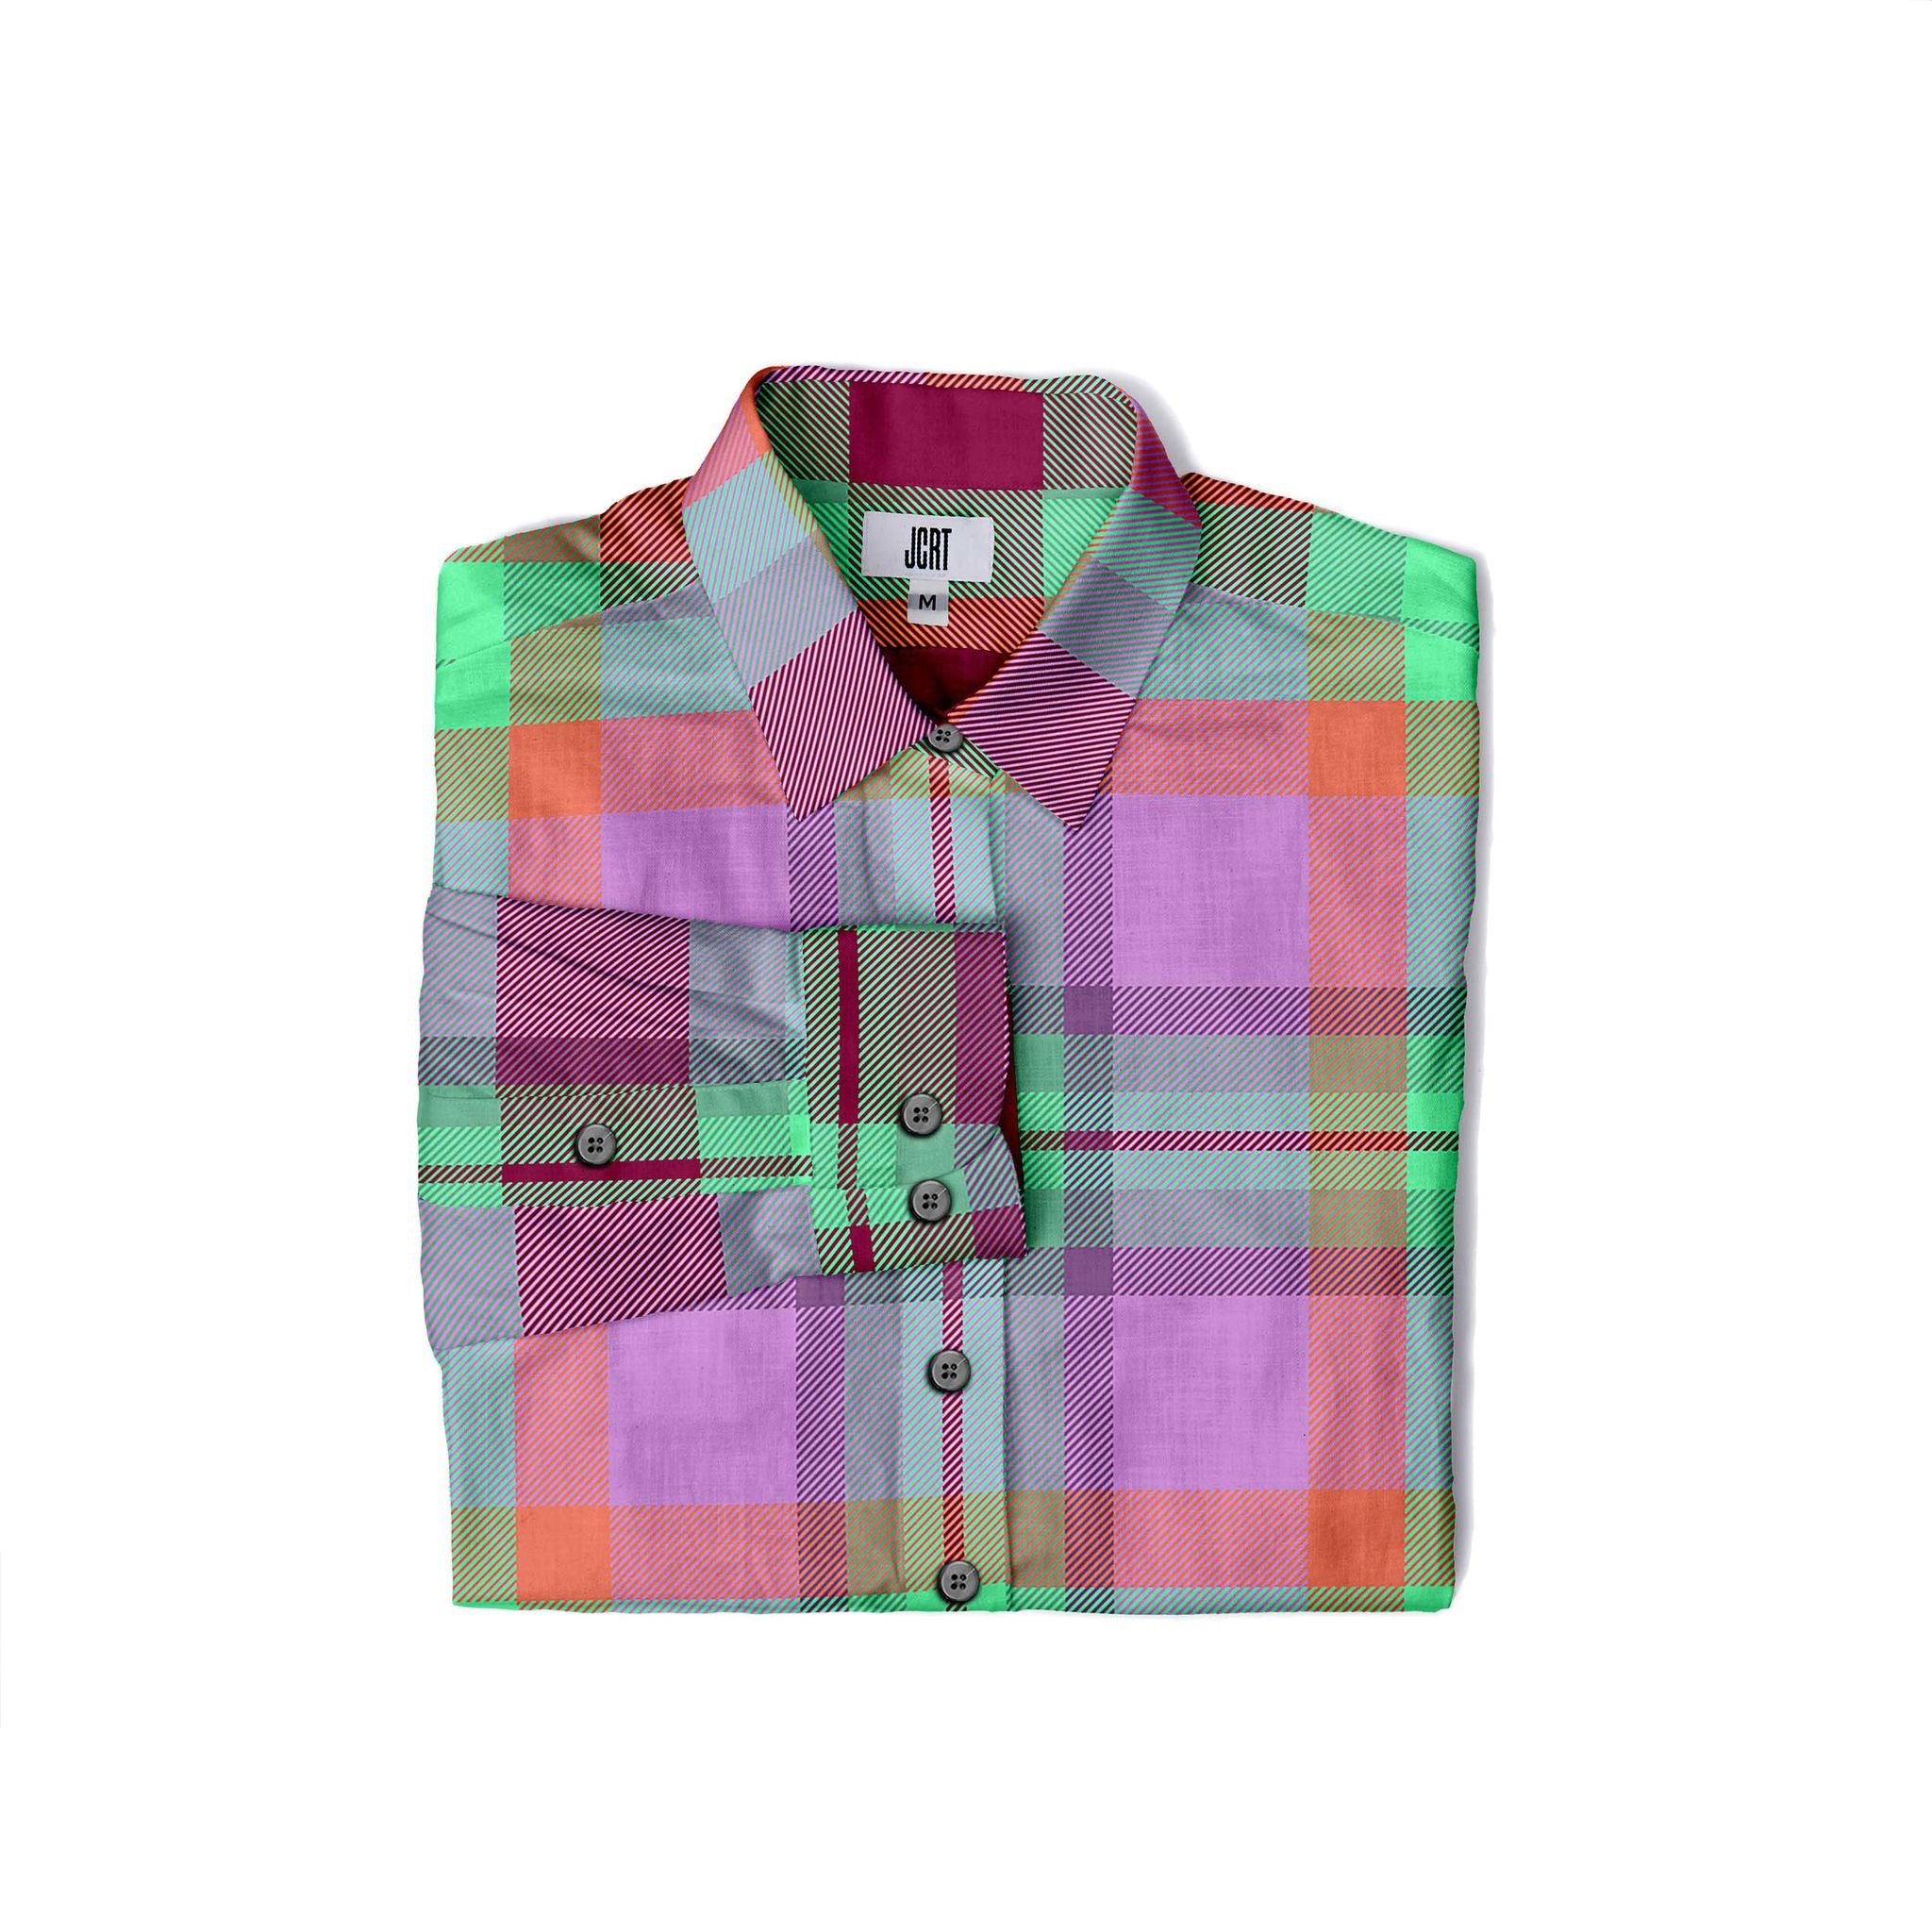 The JCRT Stubbs & Wootton Pink Plaid Women's Shirt